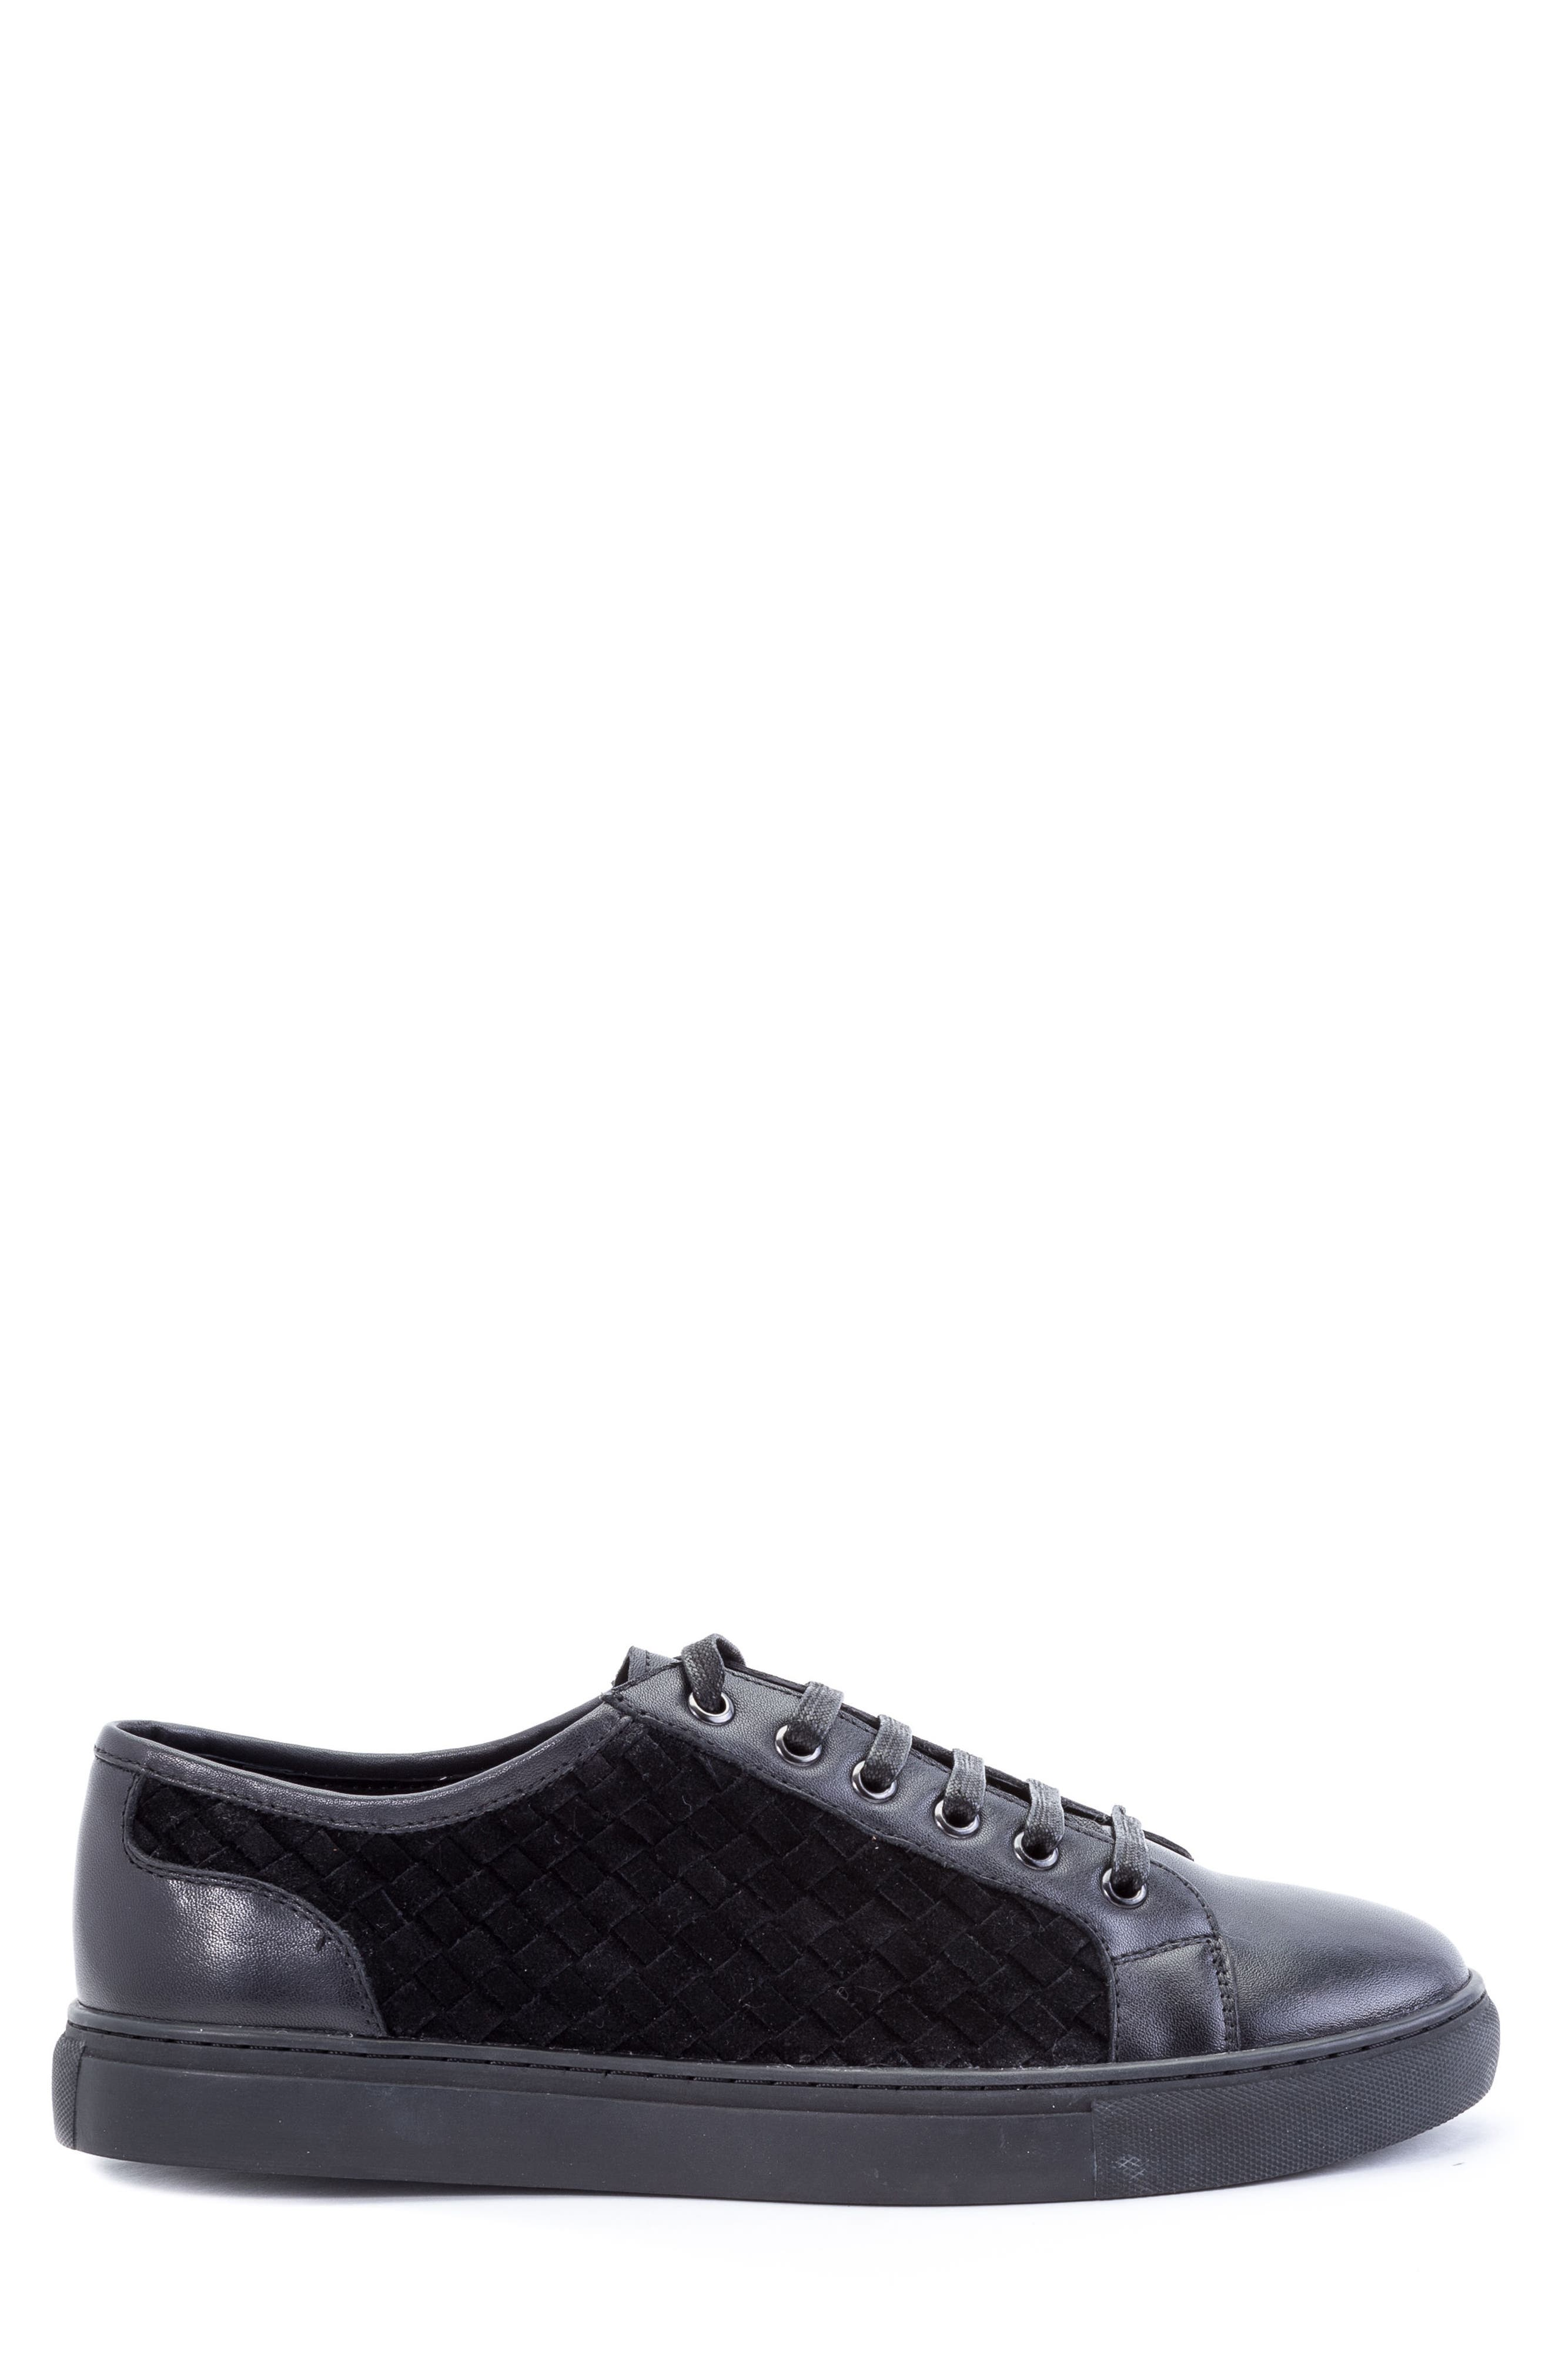 Player Woven Low Top Sneaker,                             Alternate thumbnail 3, color,                             BLACK LEATHER/ SUEDE